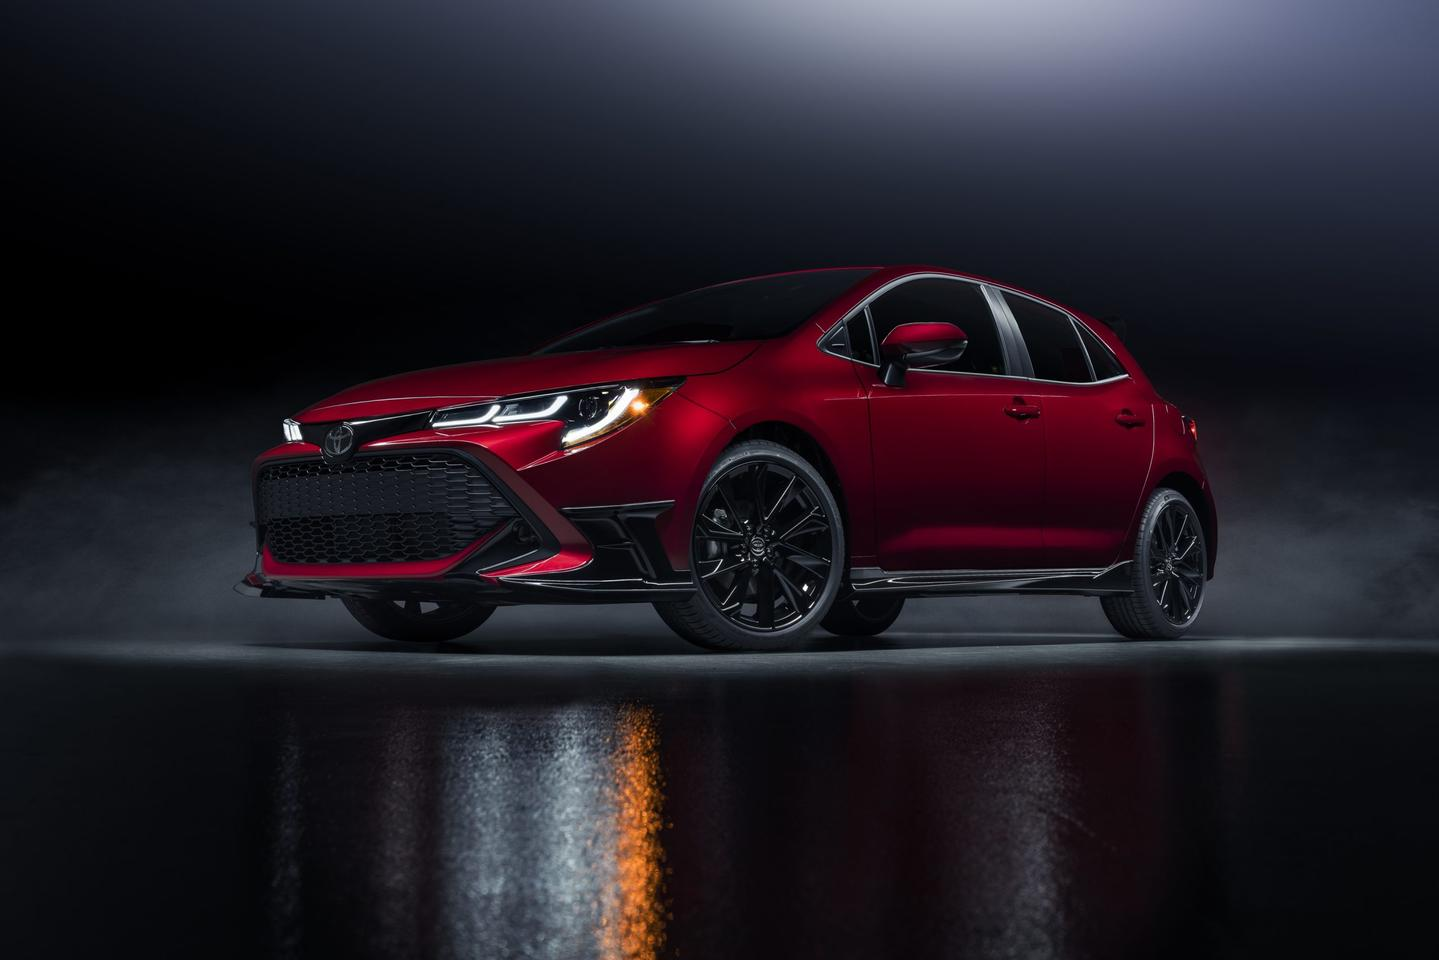 The new Special Edition of the 2021 Corolla Hatchback is mostly eye candy ... but what candy it is!